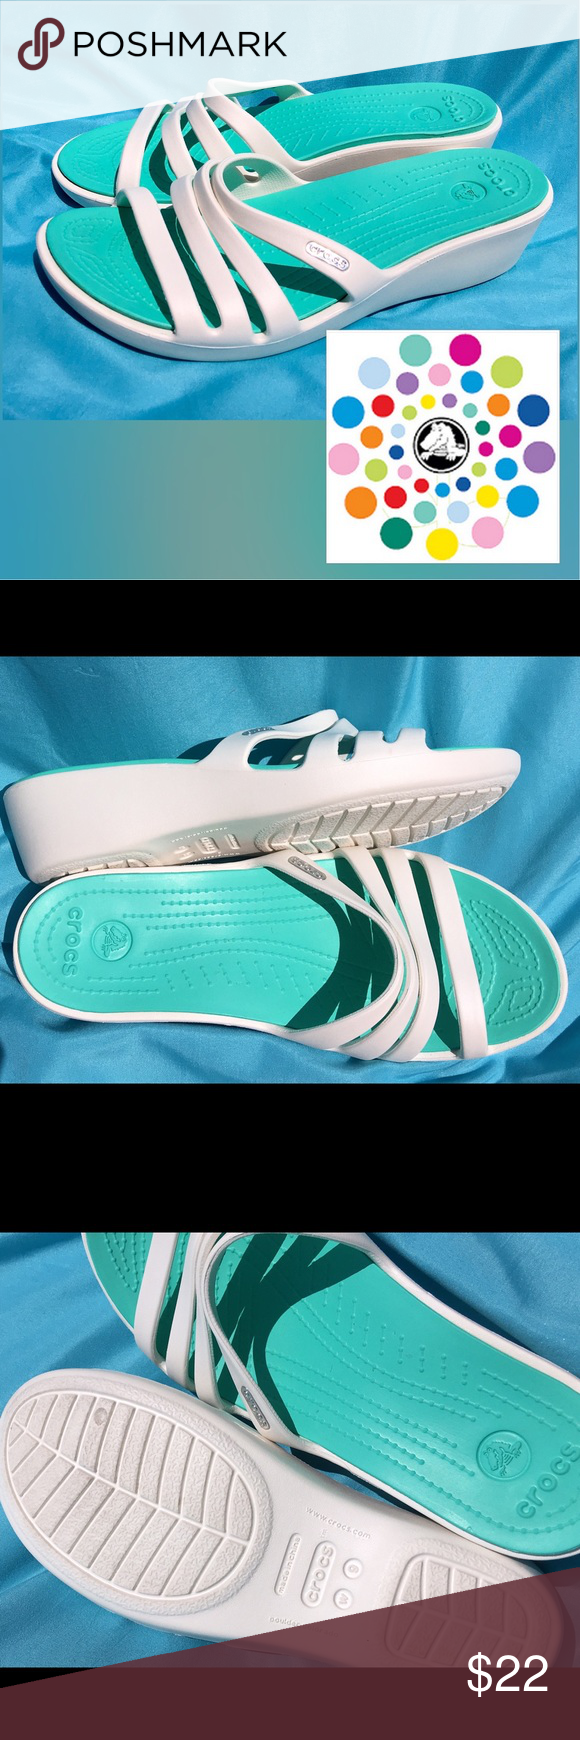 """f911cb0de7b CROCS """"Rhonda"""" Oyster White   Island Green CROCS """"Rhonda"""" Strappy Wedge  Sandals Heel Height (at Back of Shoe) 2"""" Color  Oyster White with Island  Green ..."""